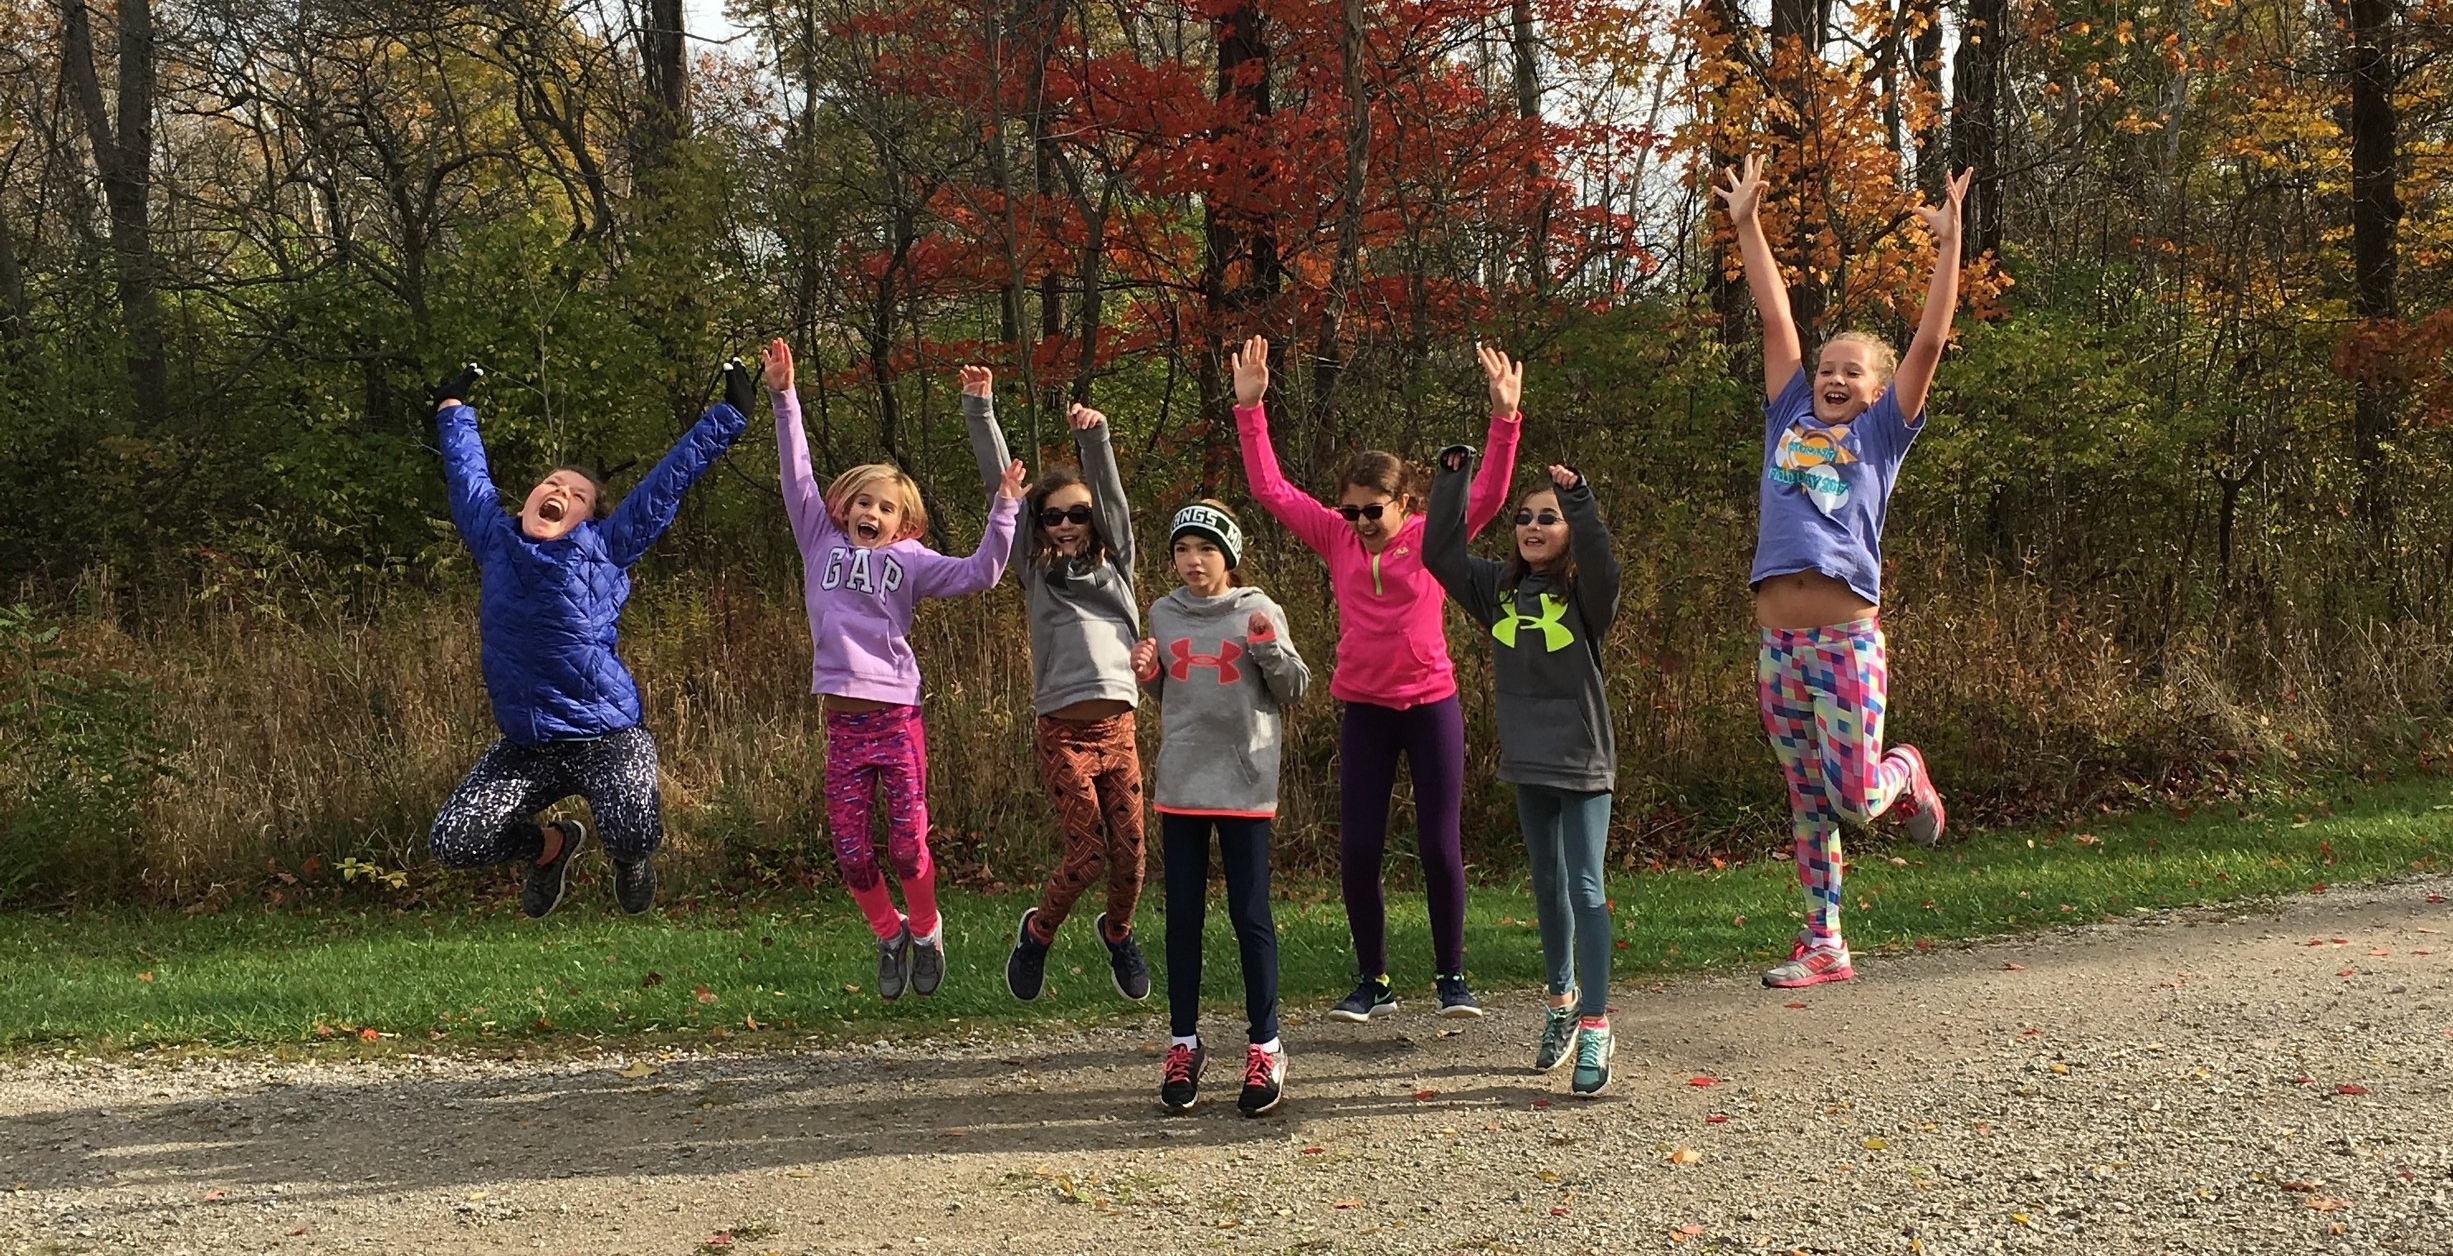 After coaching a small group of girls in the awesome Girls on the Run Program, we decided that there was a greater need for expansion and inclusion.  We hope to grow into a multi community youth running program with shared curriculum, training plans, and enthusiasm for running.